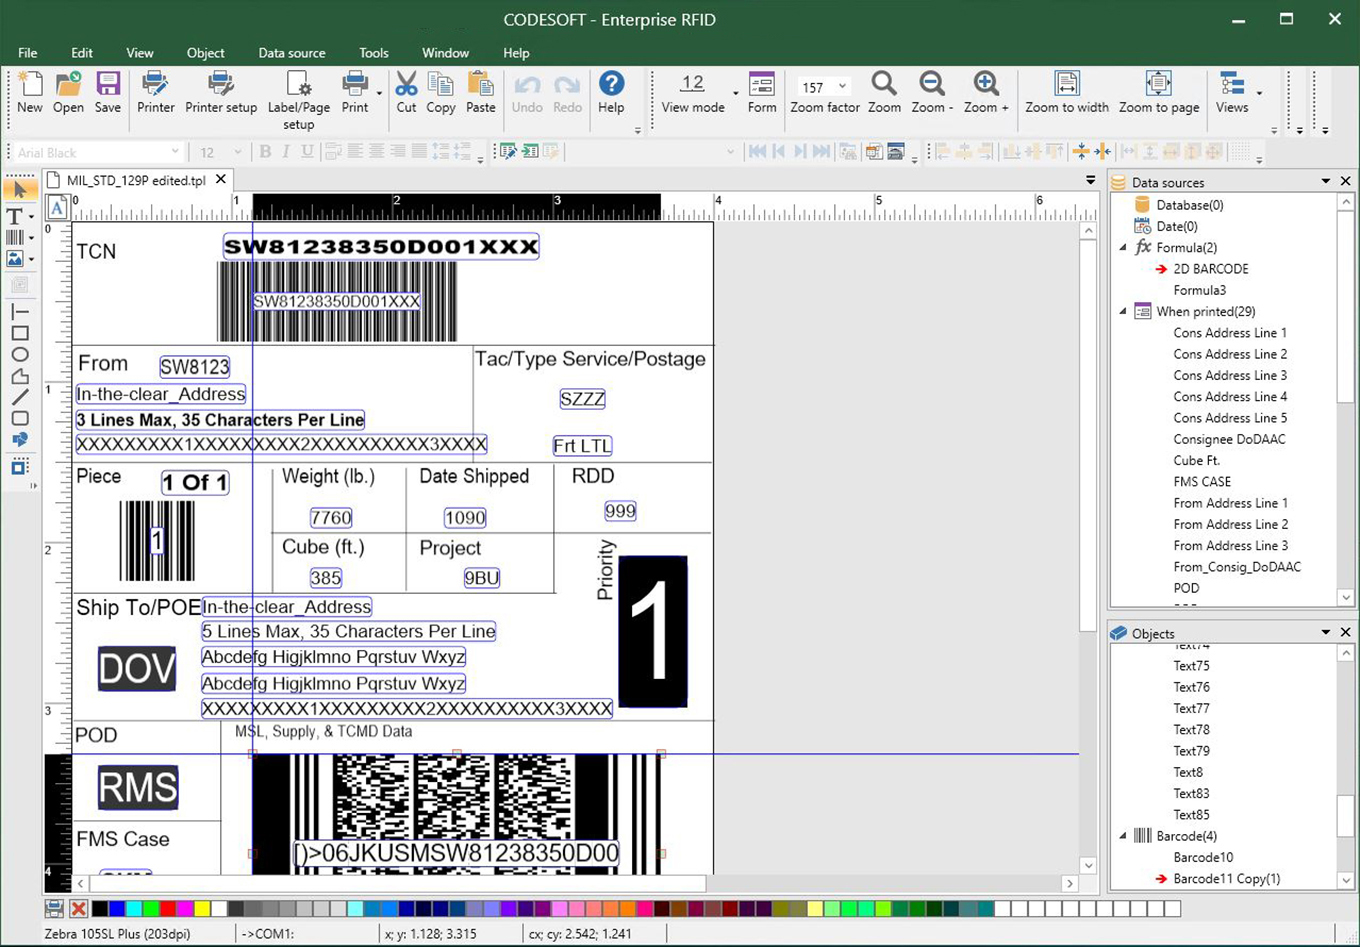 CODESOFT barcode label software